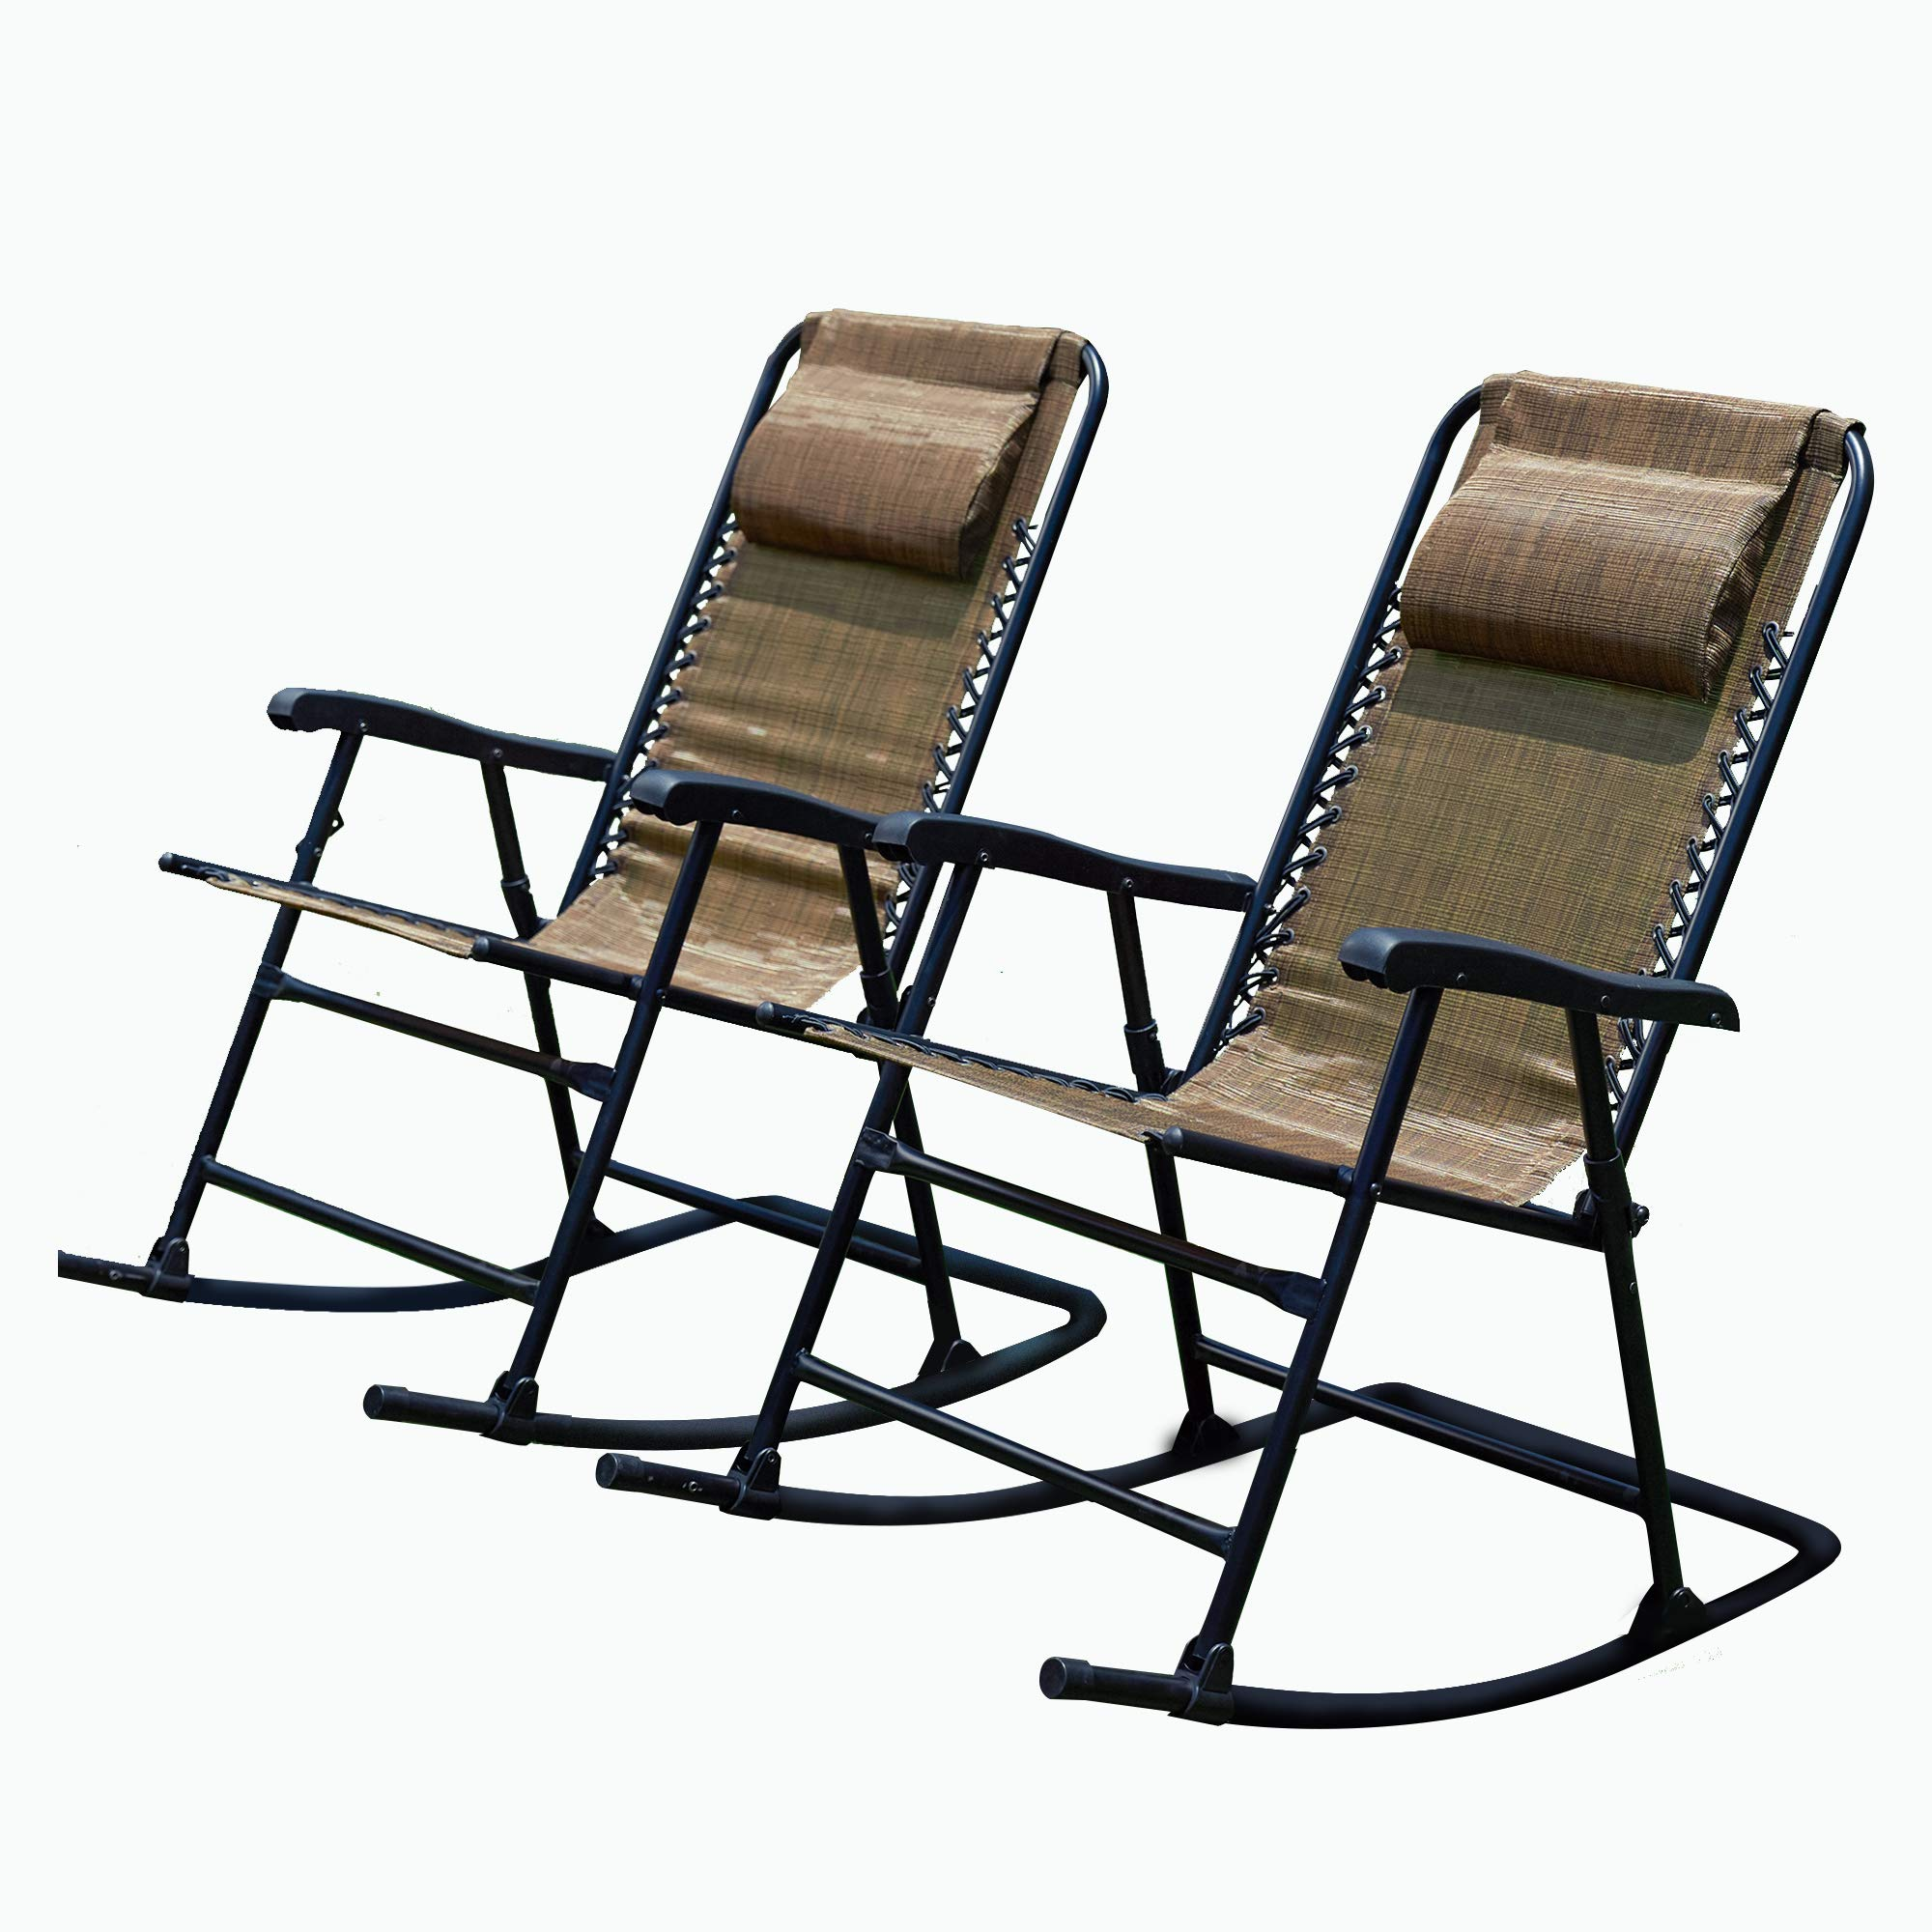 LOKATSE HOME Outdoor Patio Folding Zero Gravity Rocking Chair Set with 2 Portable Camping Recliners, Brown